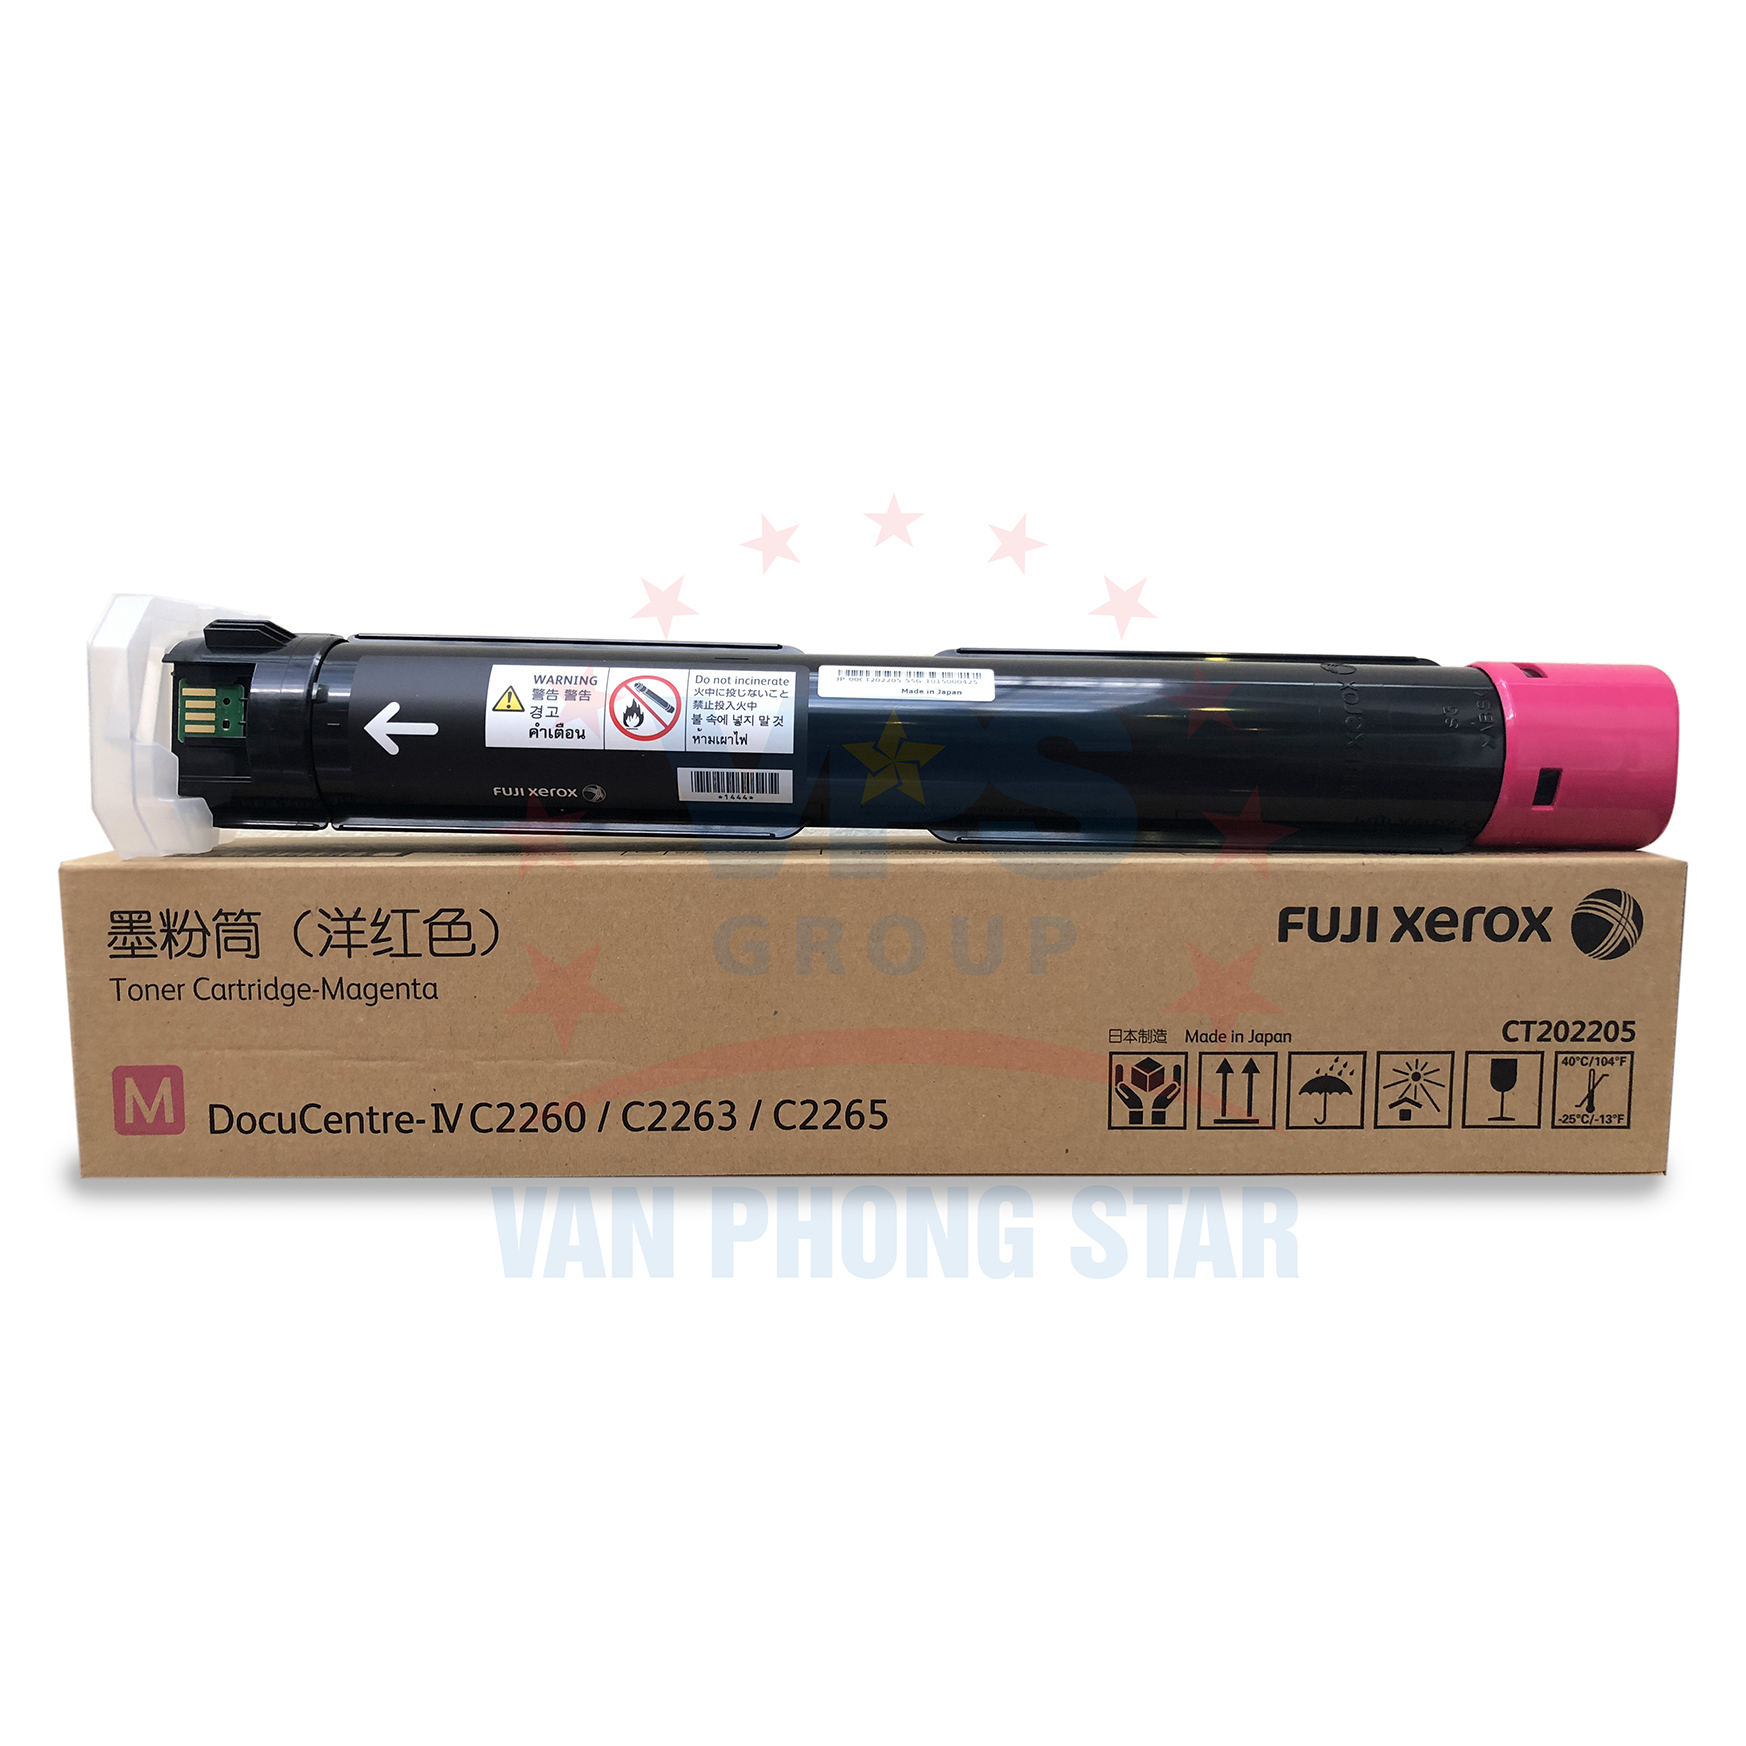 toner-cartridge-magenta-docucentre-iv-c2260-c2263-c2265